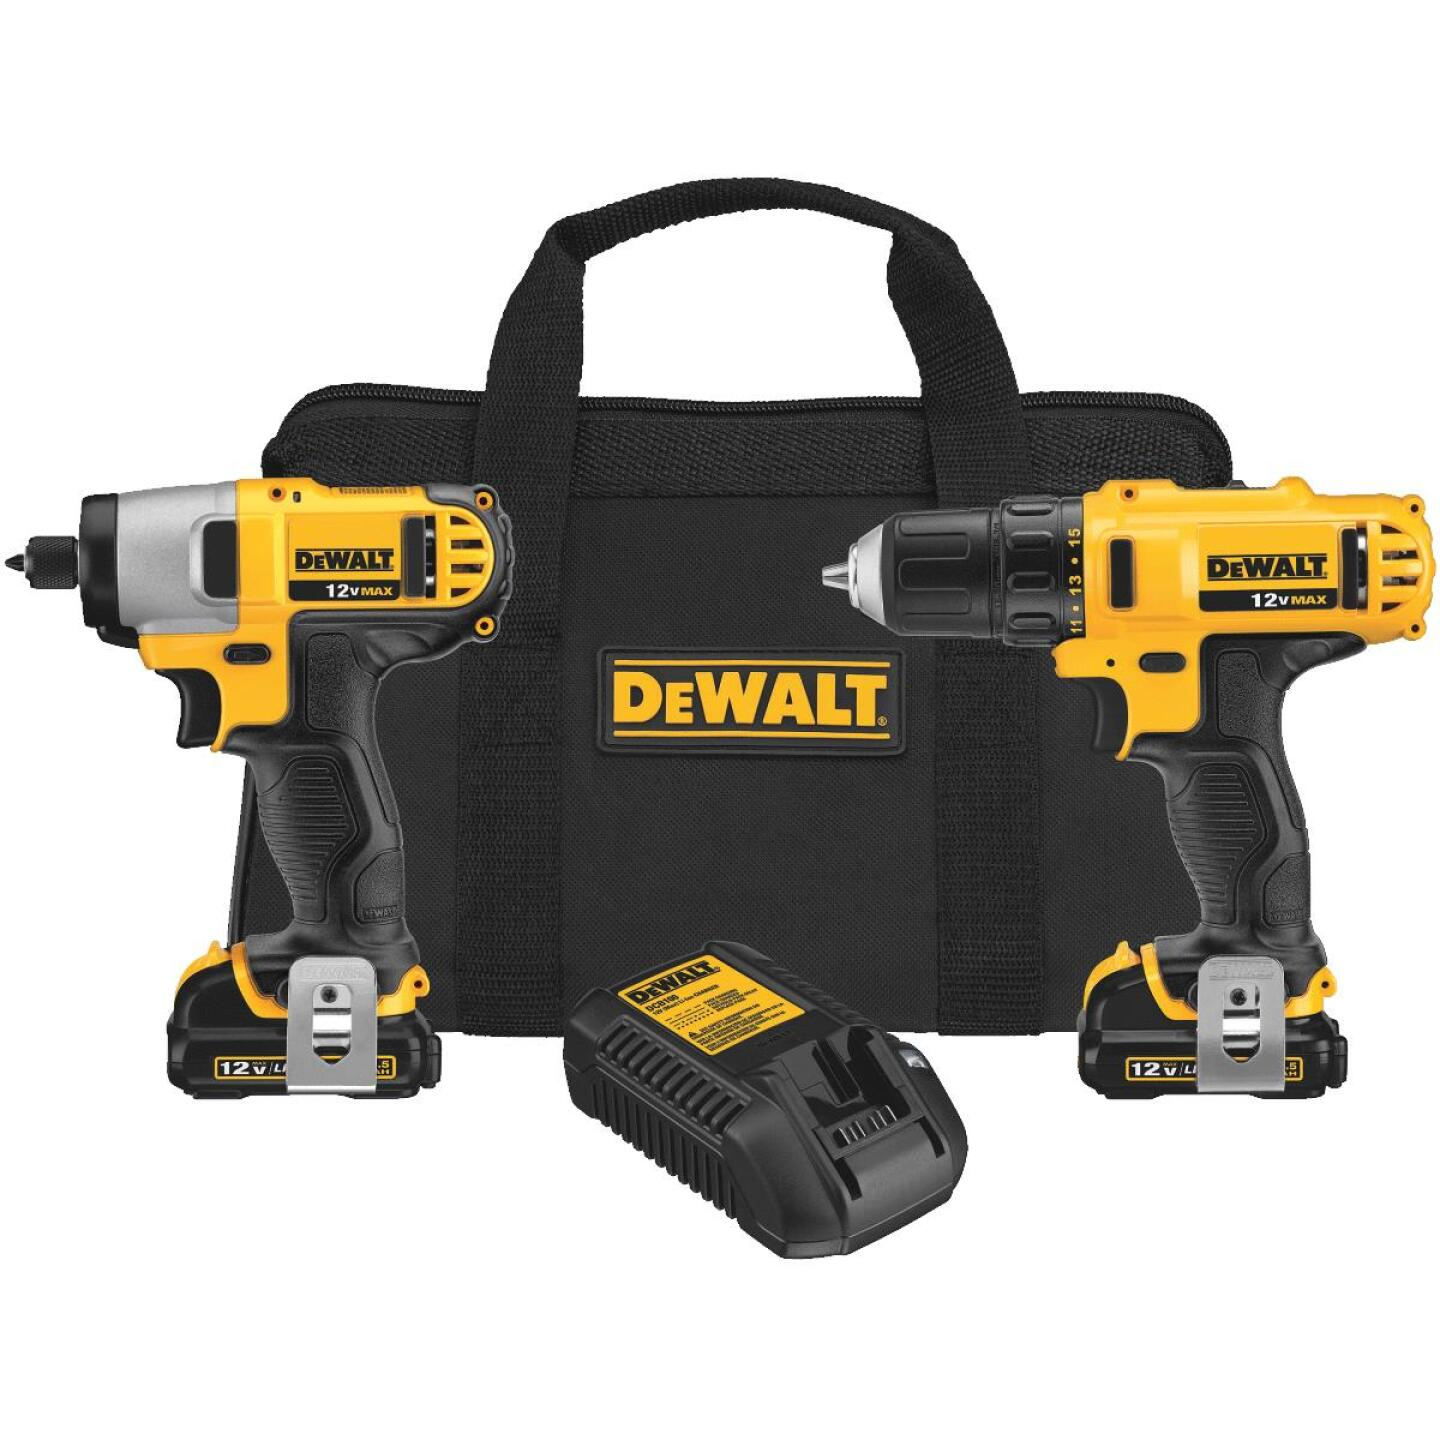 DeWalt XTREME 2-Tool 12 Volt MAX Lithium-Ion Brushless Drill & Impact Driver Cordless Tool Combo Kit Image 1